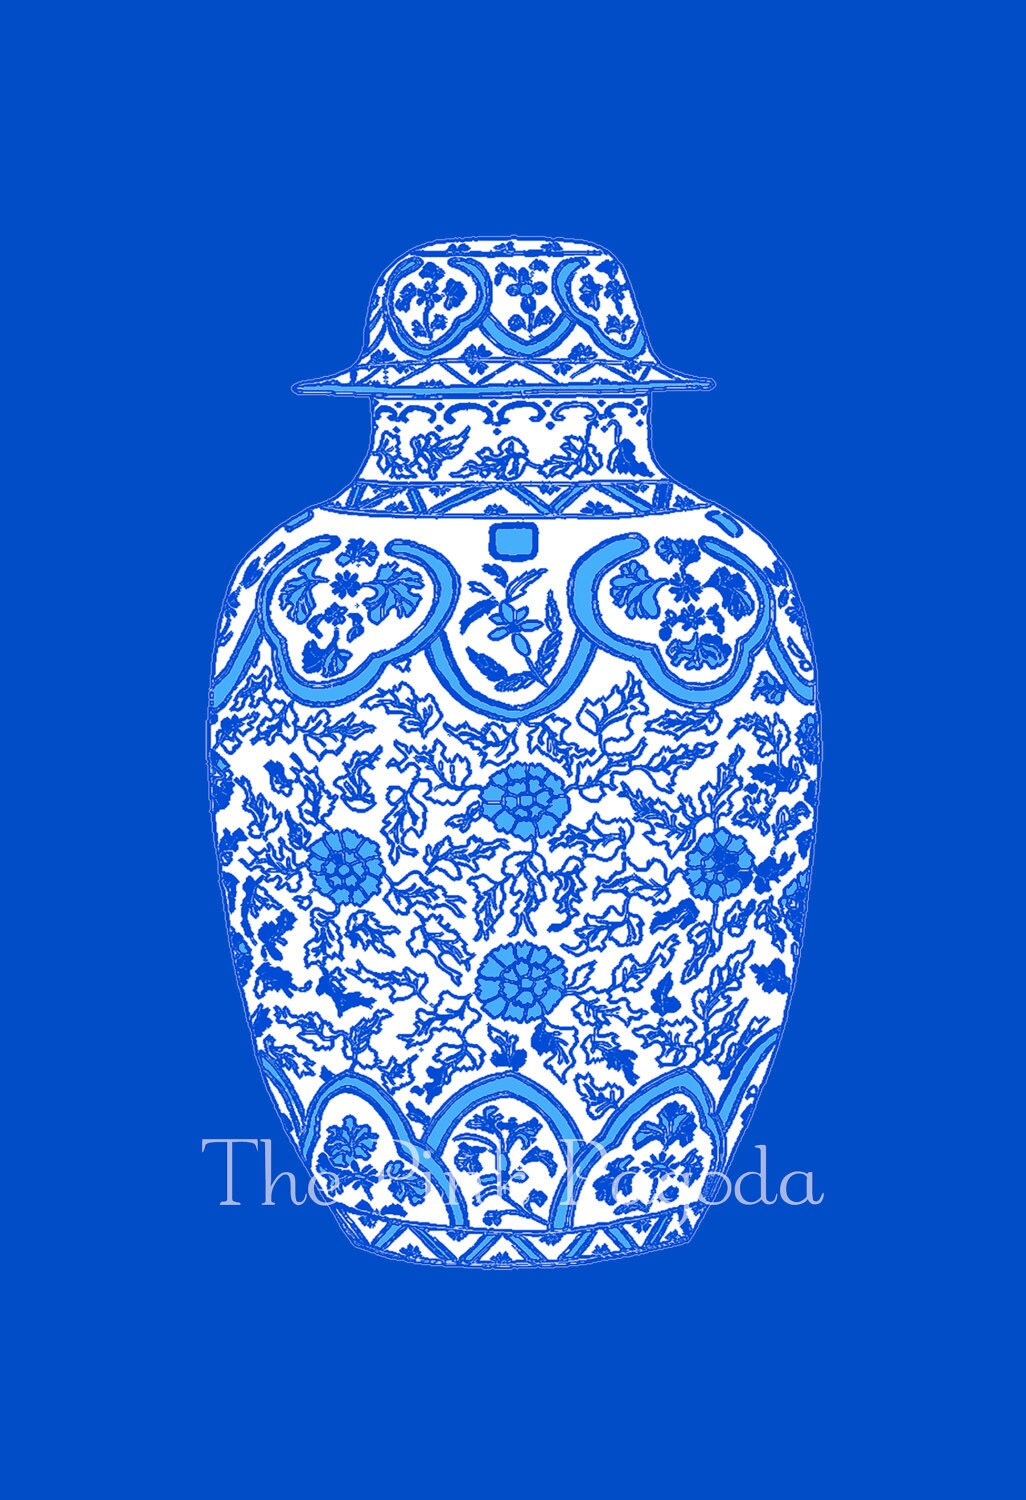 New Series Blue Ginger Jar 13x19 Giclee